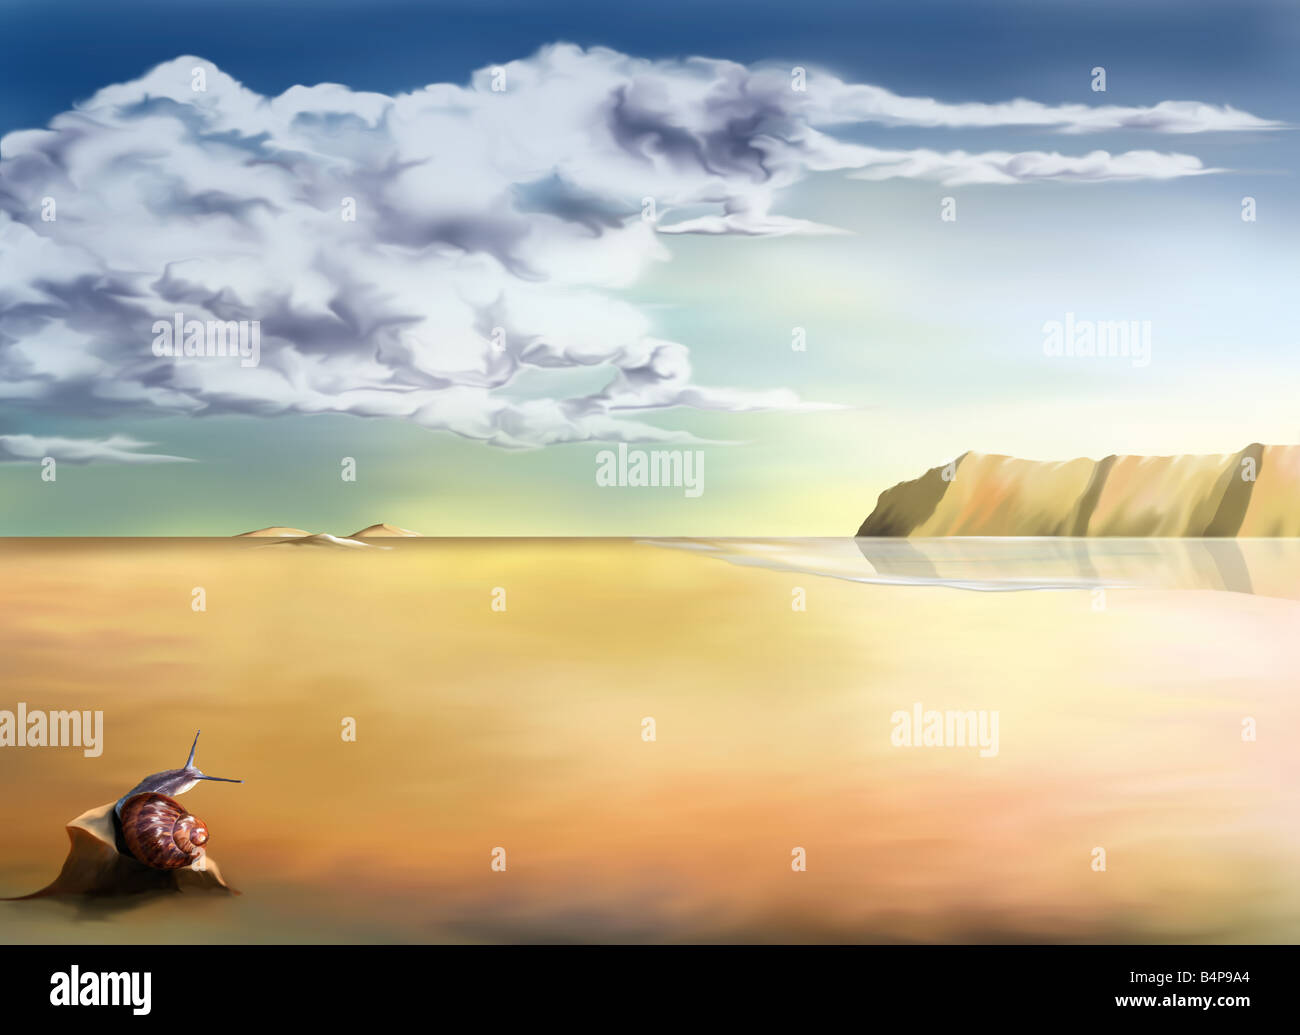 An original stylized illustration of a surreal landscape background Stock Photo